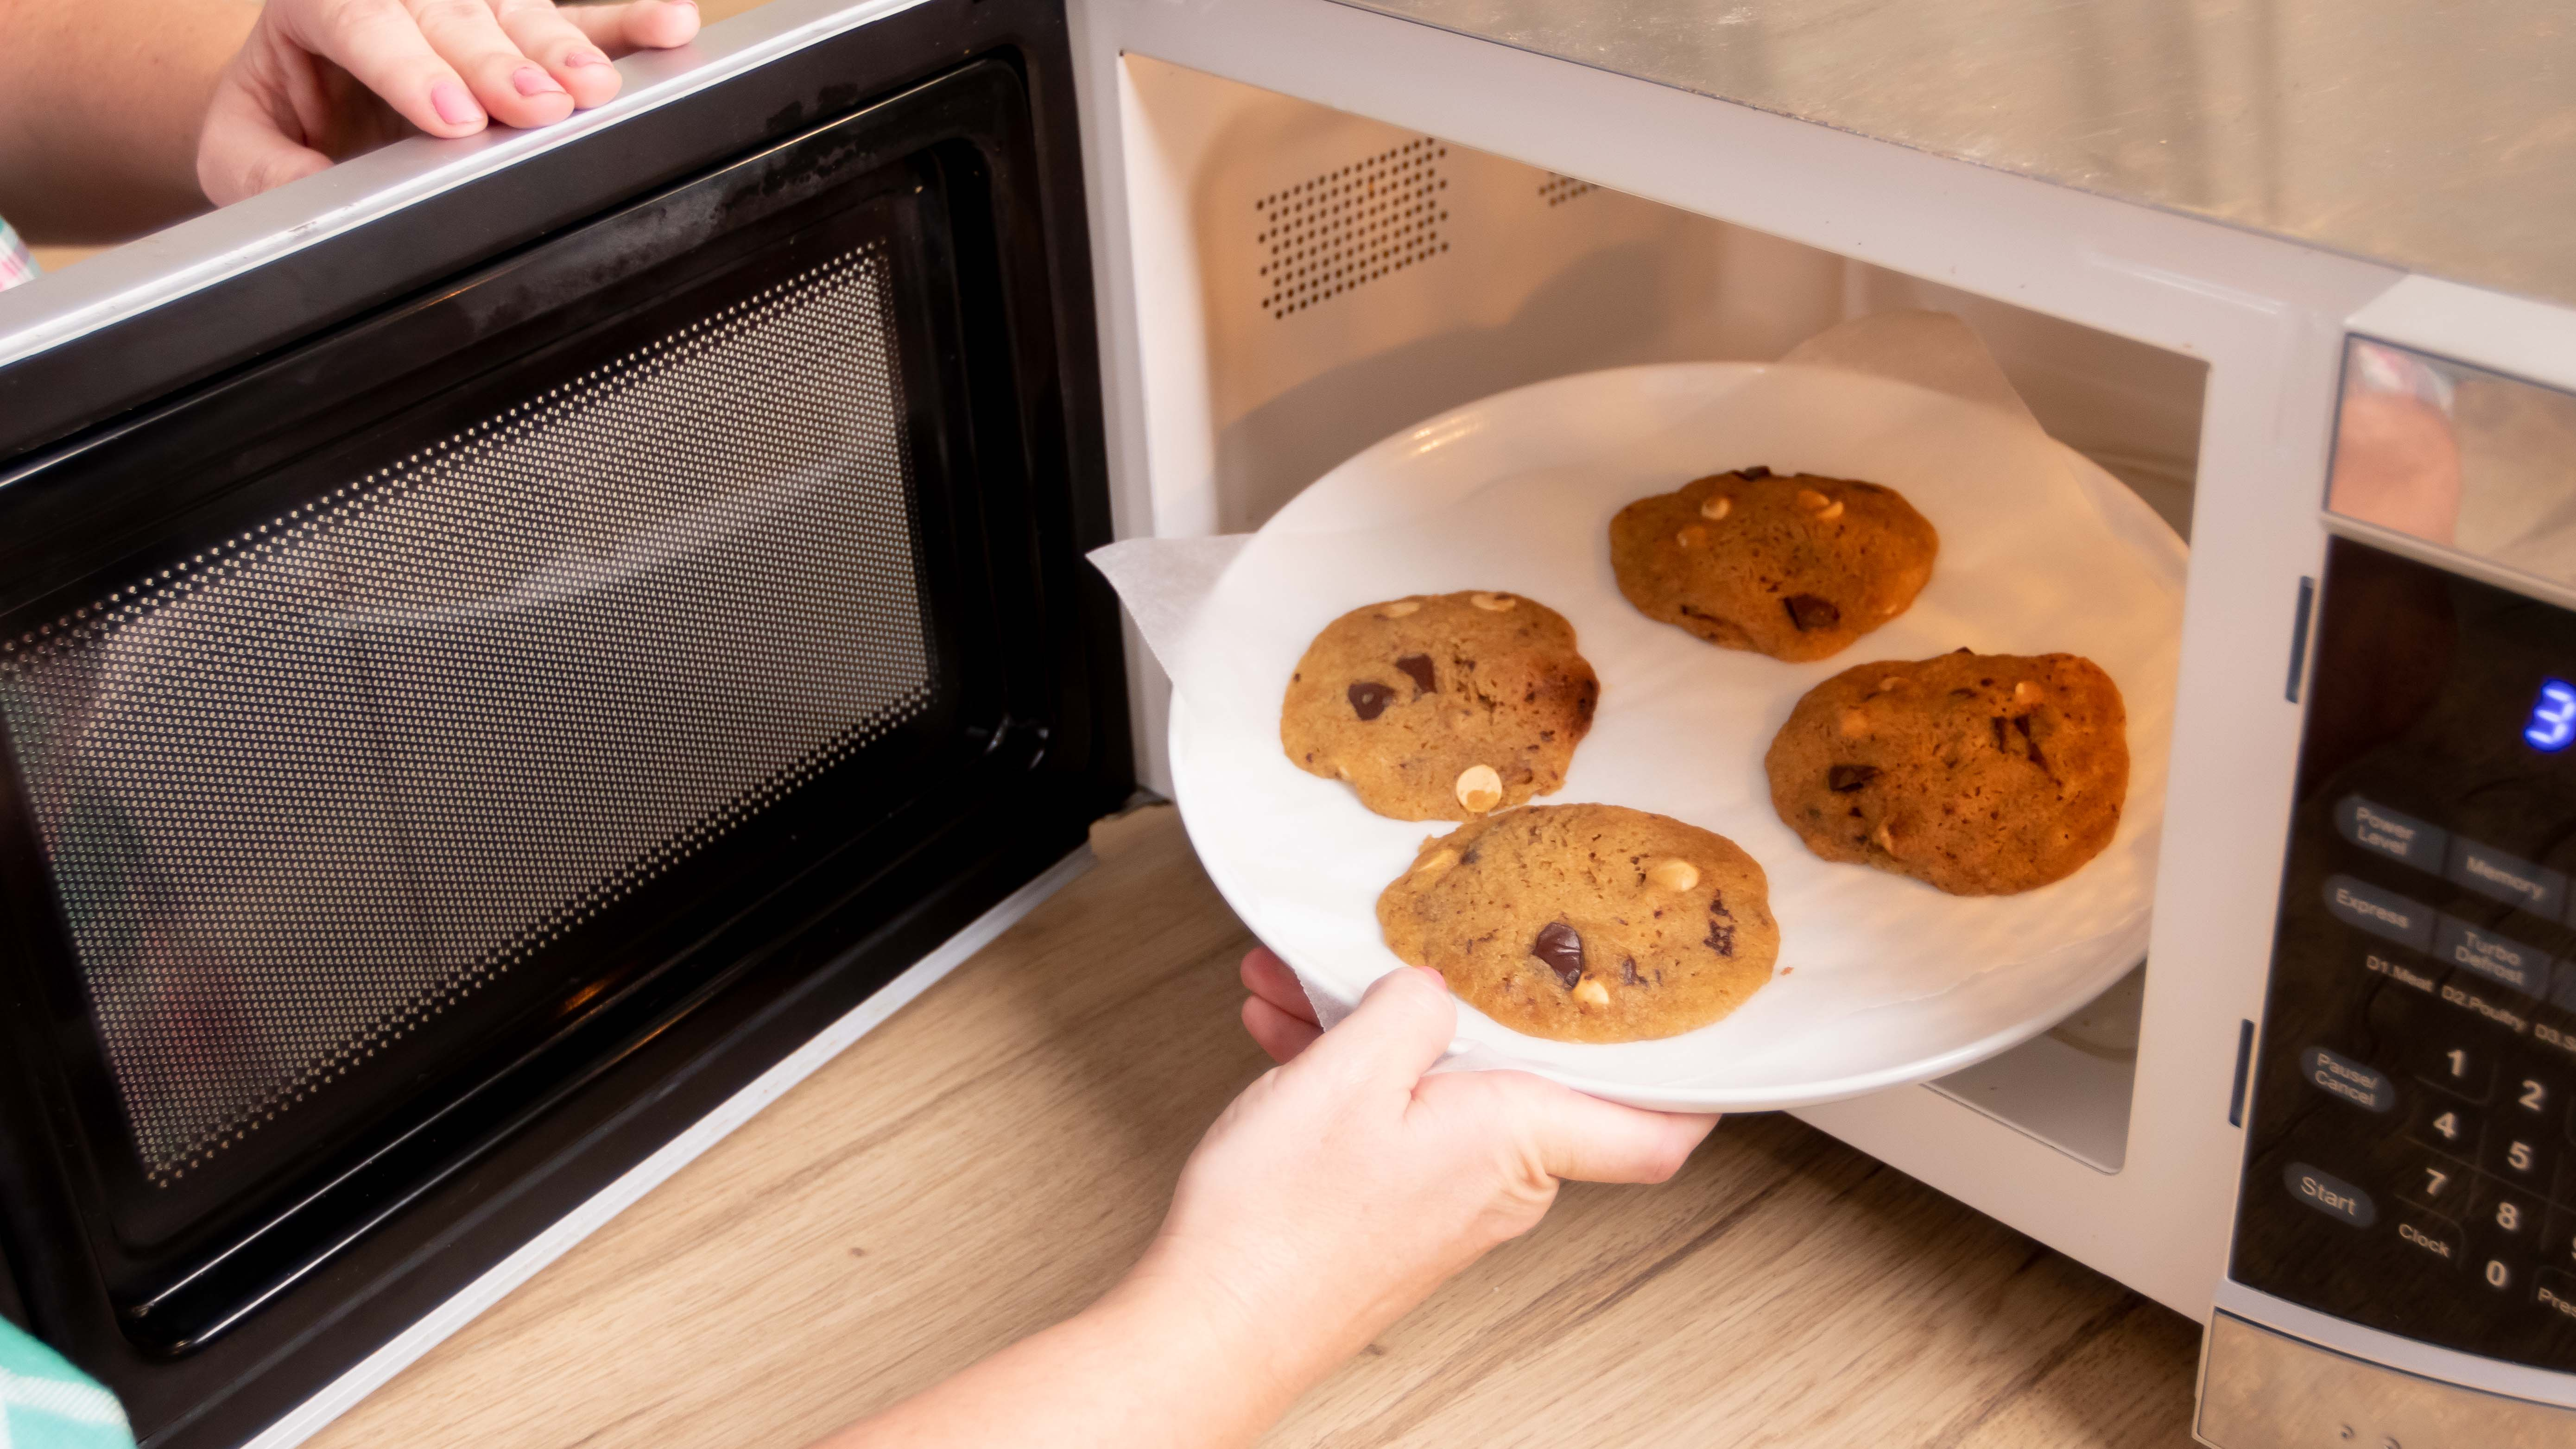 Microwave cookies are easy and quick